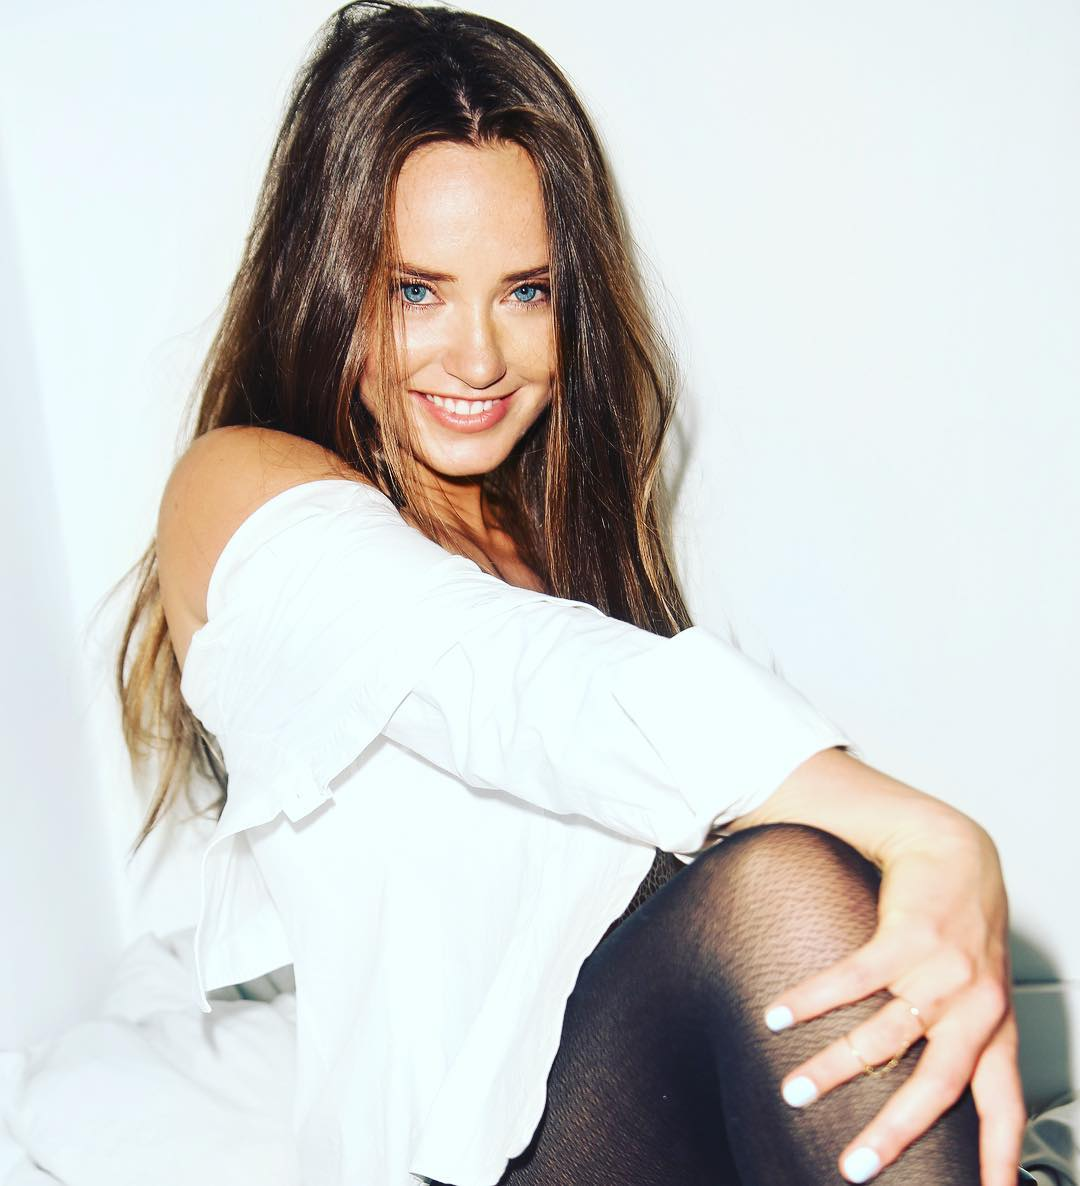 Merritt Patterson - Biography, Net Worth, Movies and TV Shows